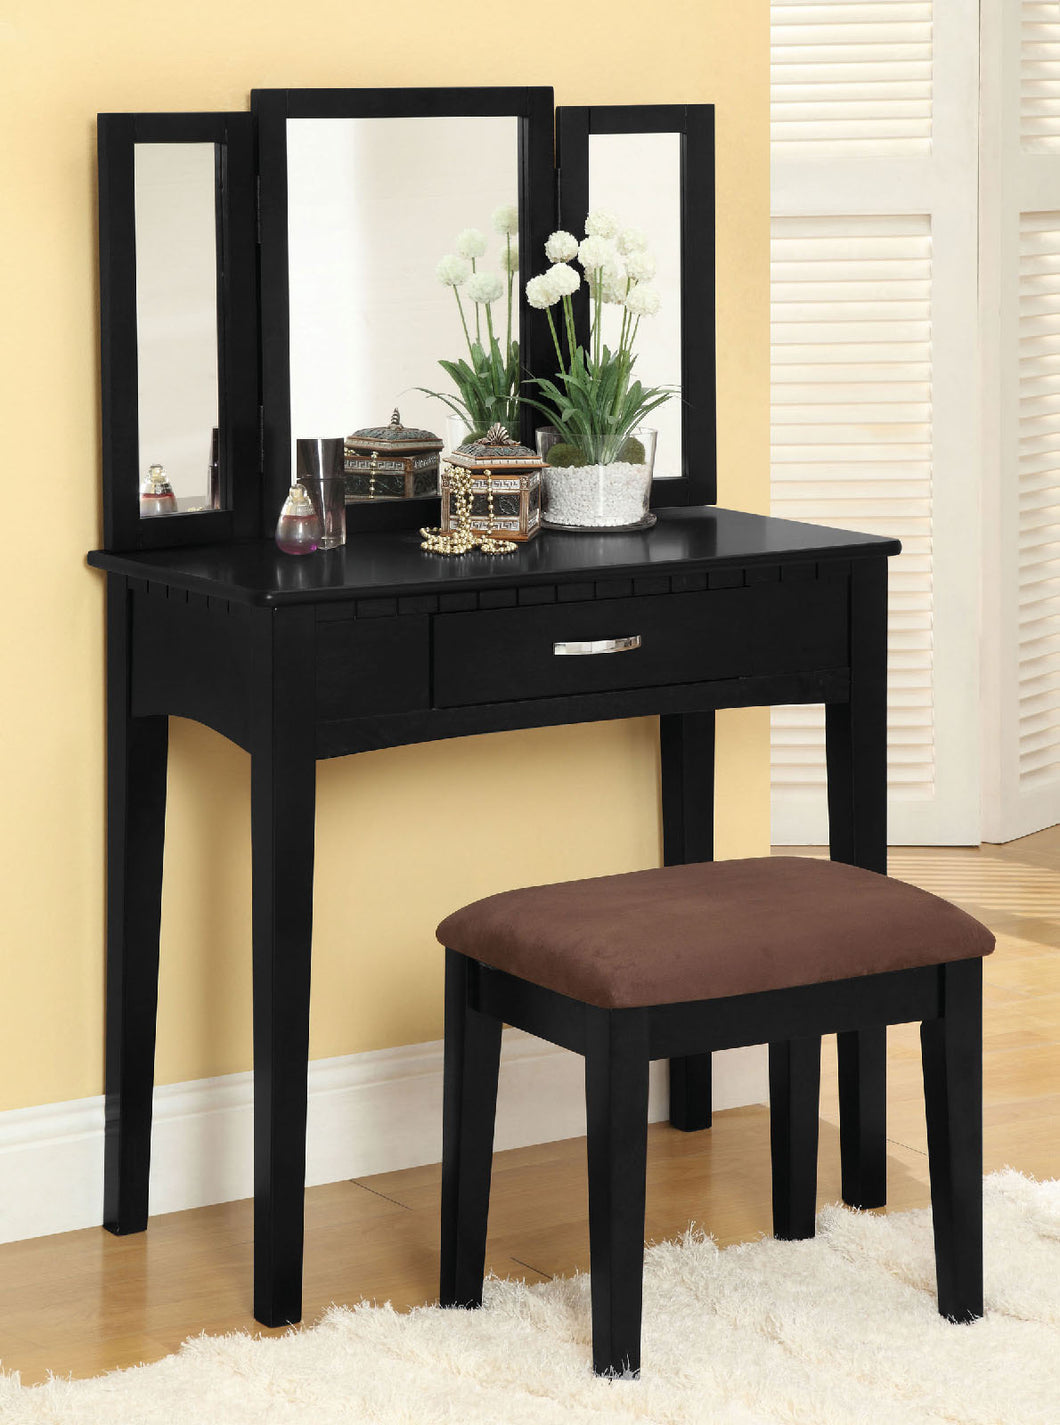 CM-DK6490BK Vanity Set - Potterville Black Finish Contemporary Style Vanity Table with Stool